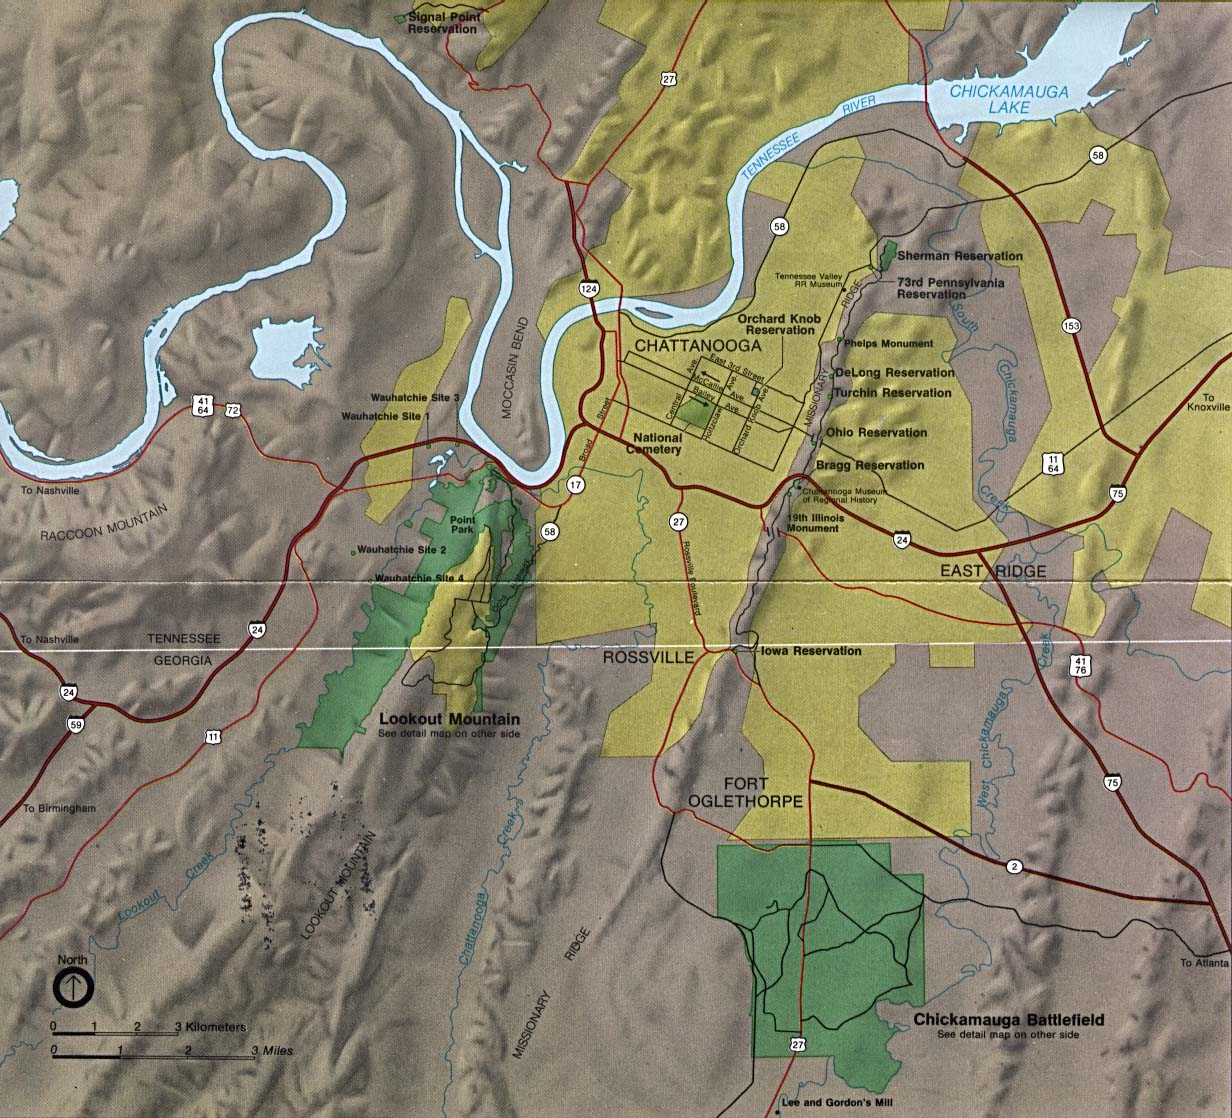 This Map Shows All Of The Chickamauga And Chattanooga National Military  Park Which Covers A Wide Area Of North Georgia And South East Tennessee